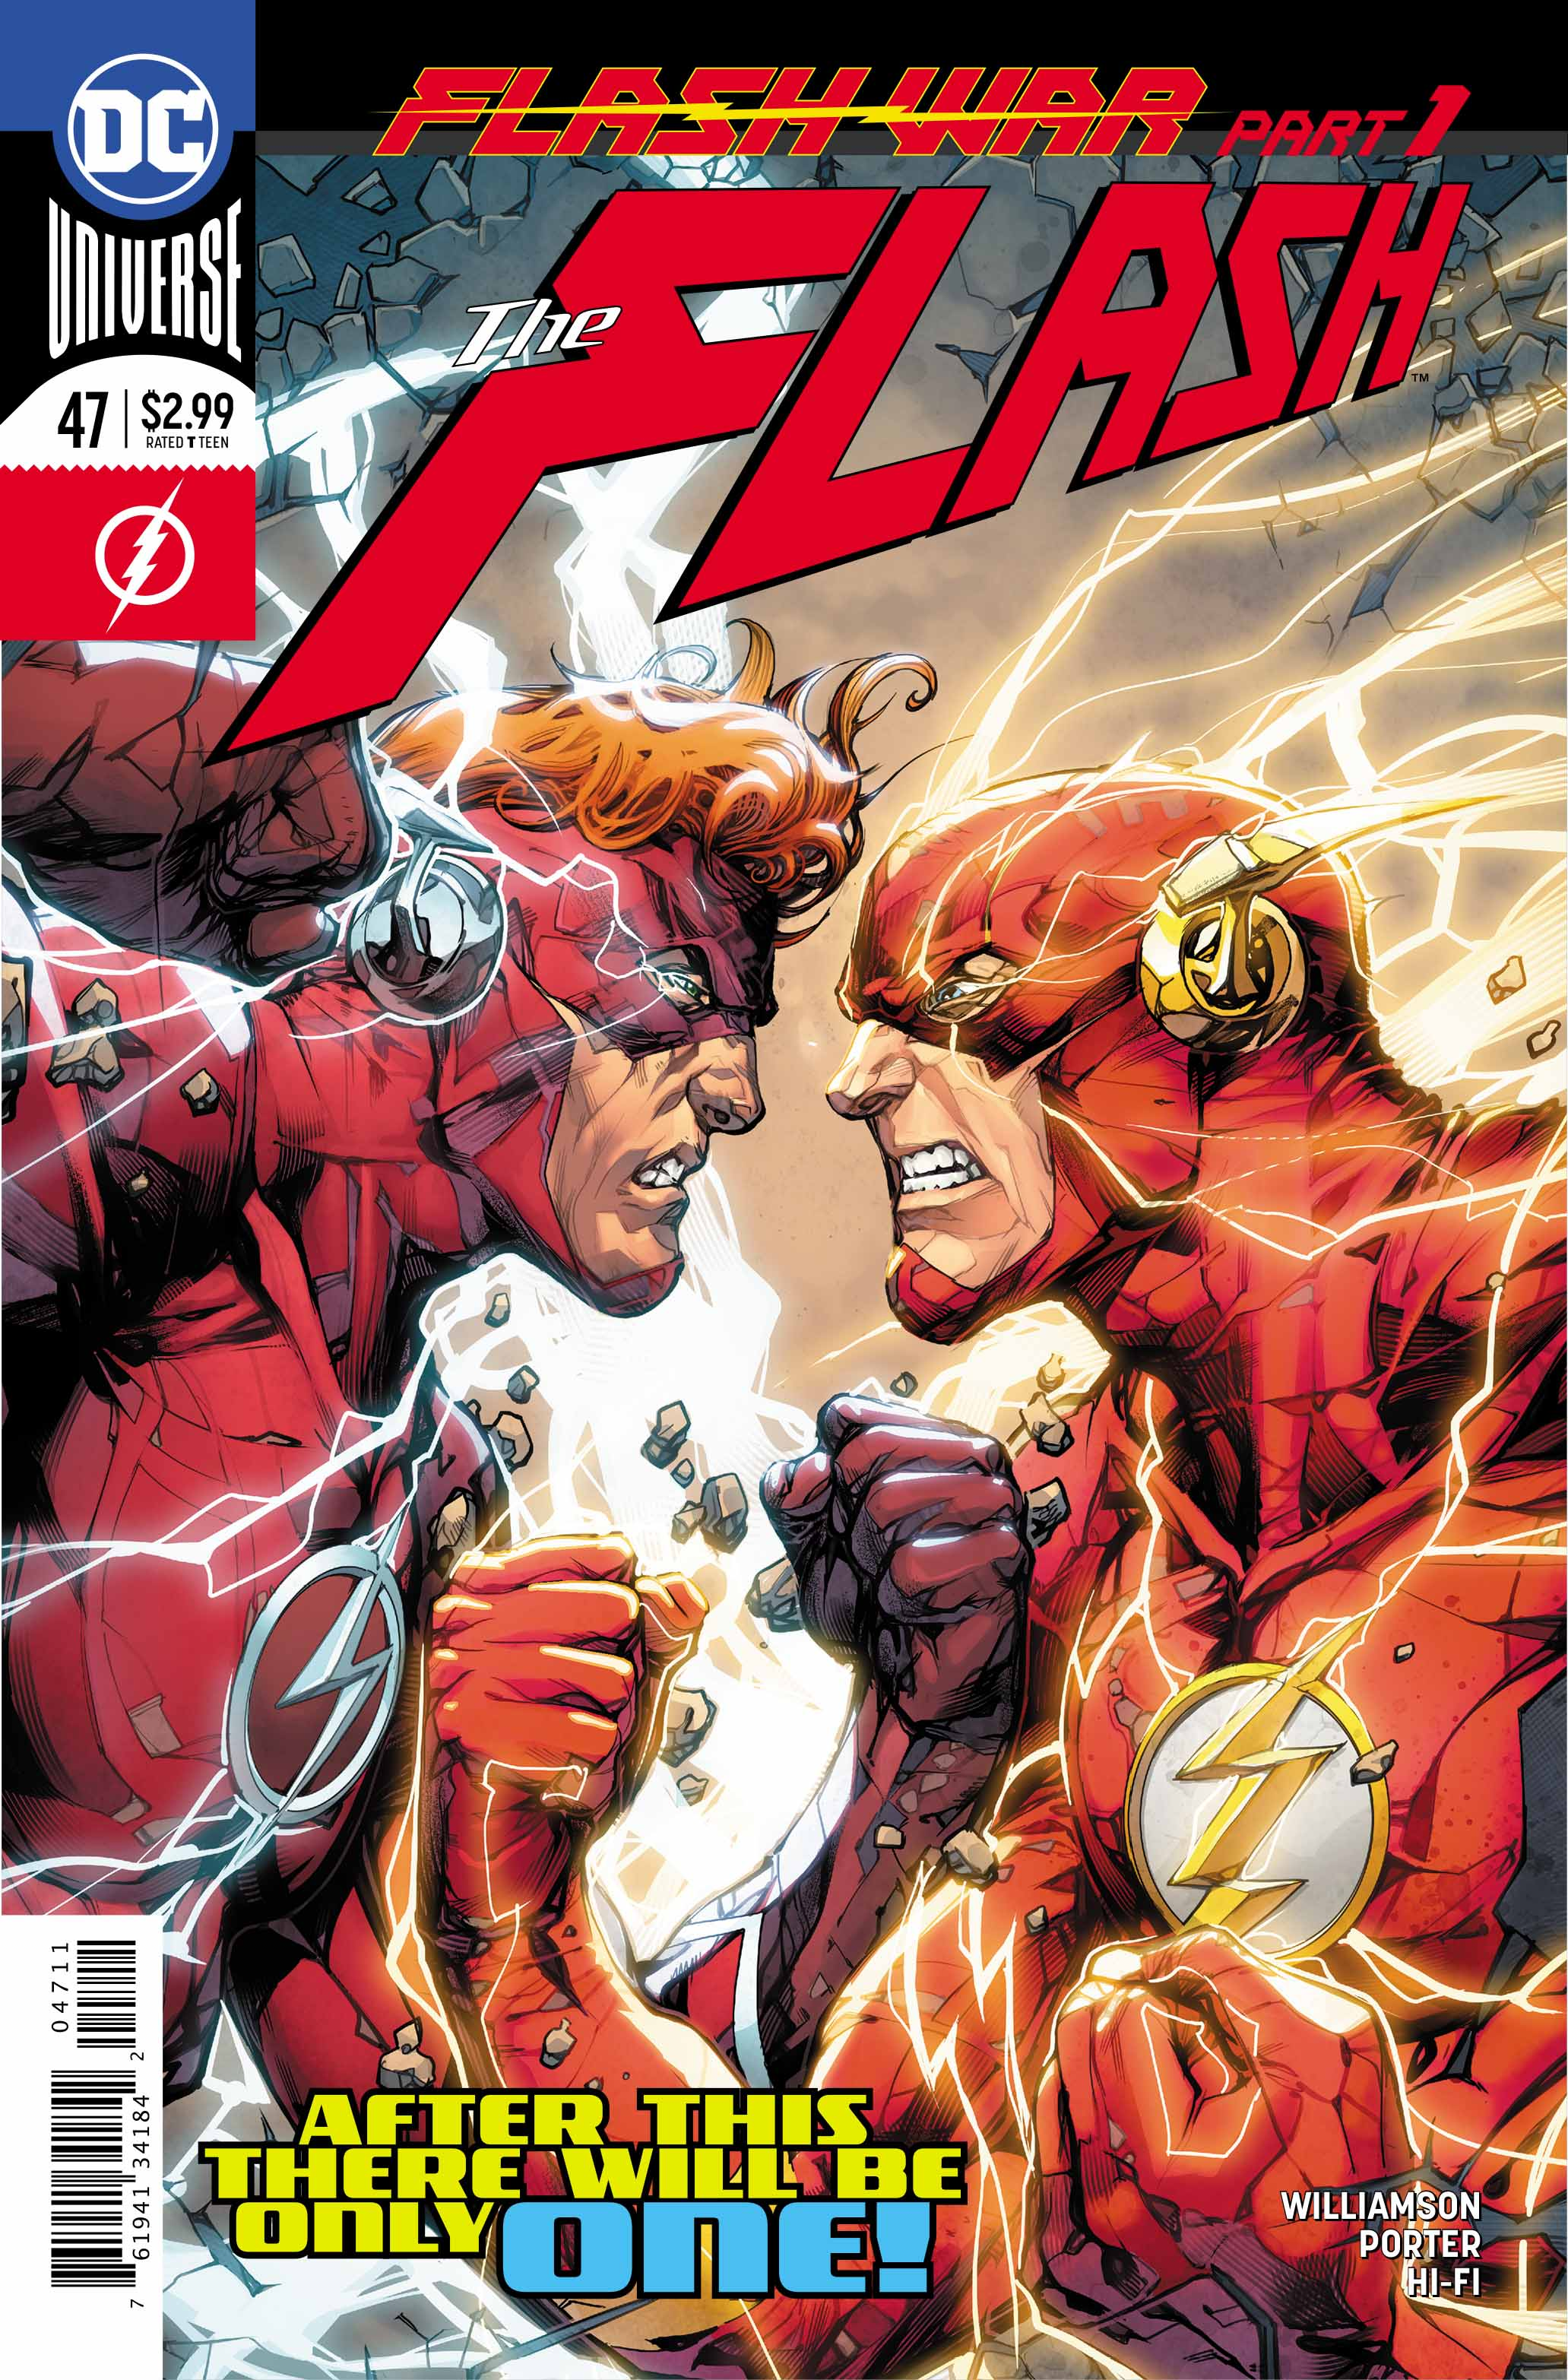 The Flash #47 Review